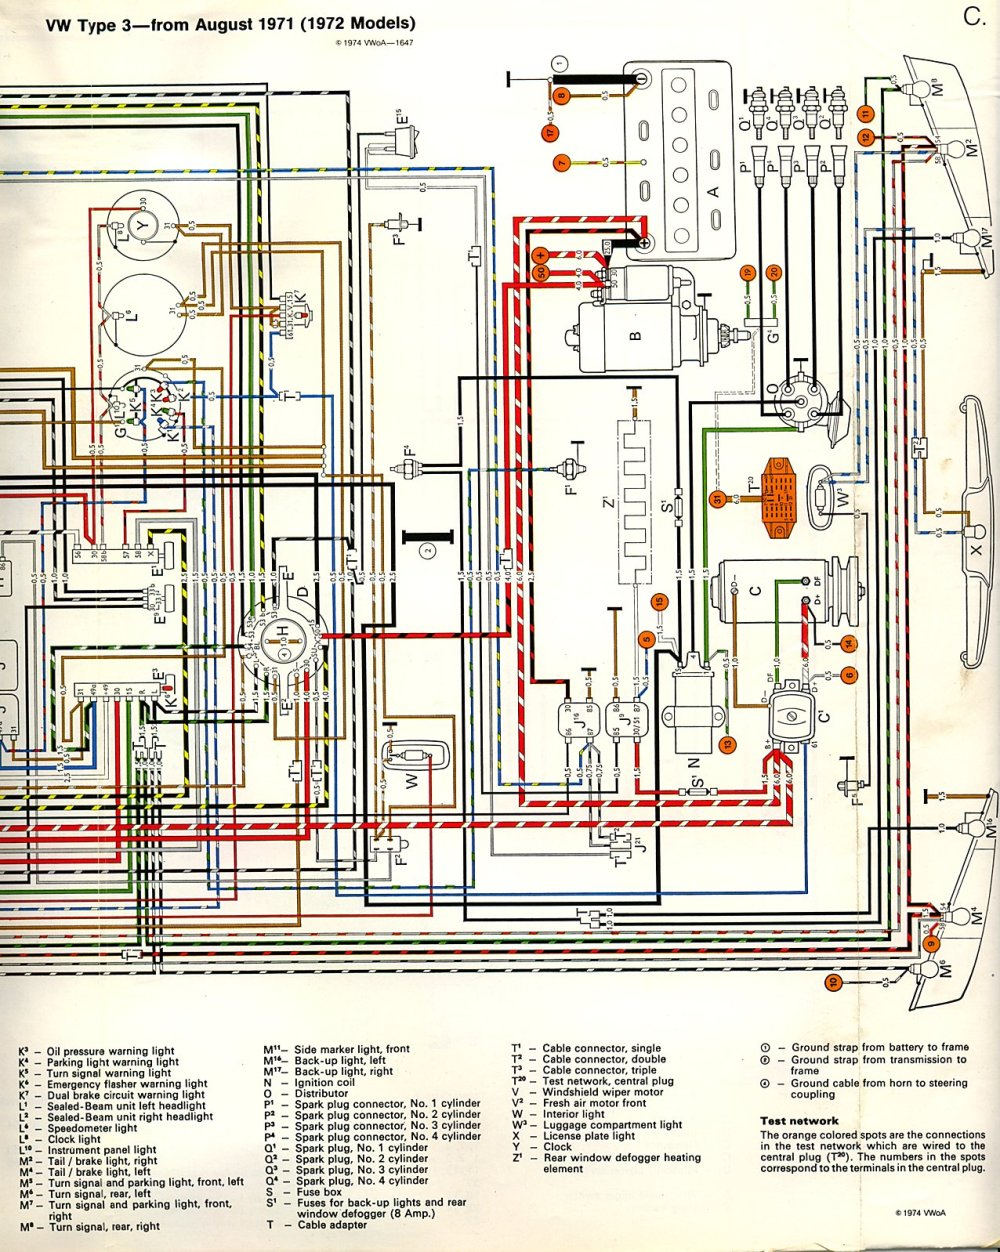 medium resolution of engine wire diagram for 72 beetle wiring librarythesamba com type 3 wiring diagrams rh thesamba com